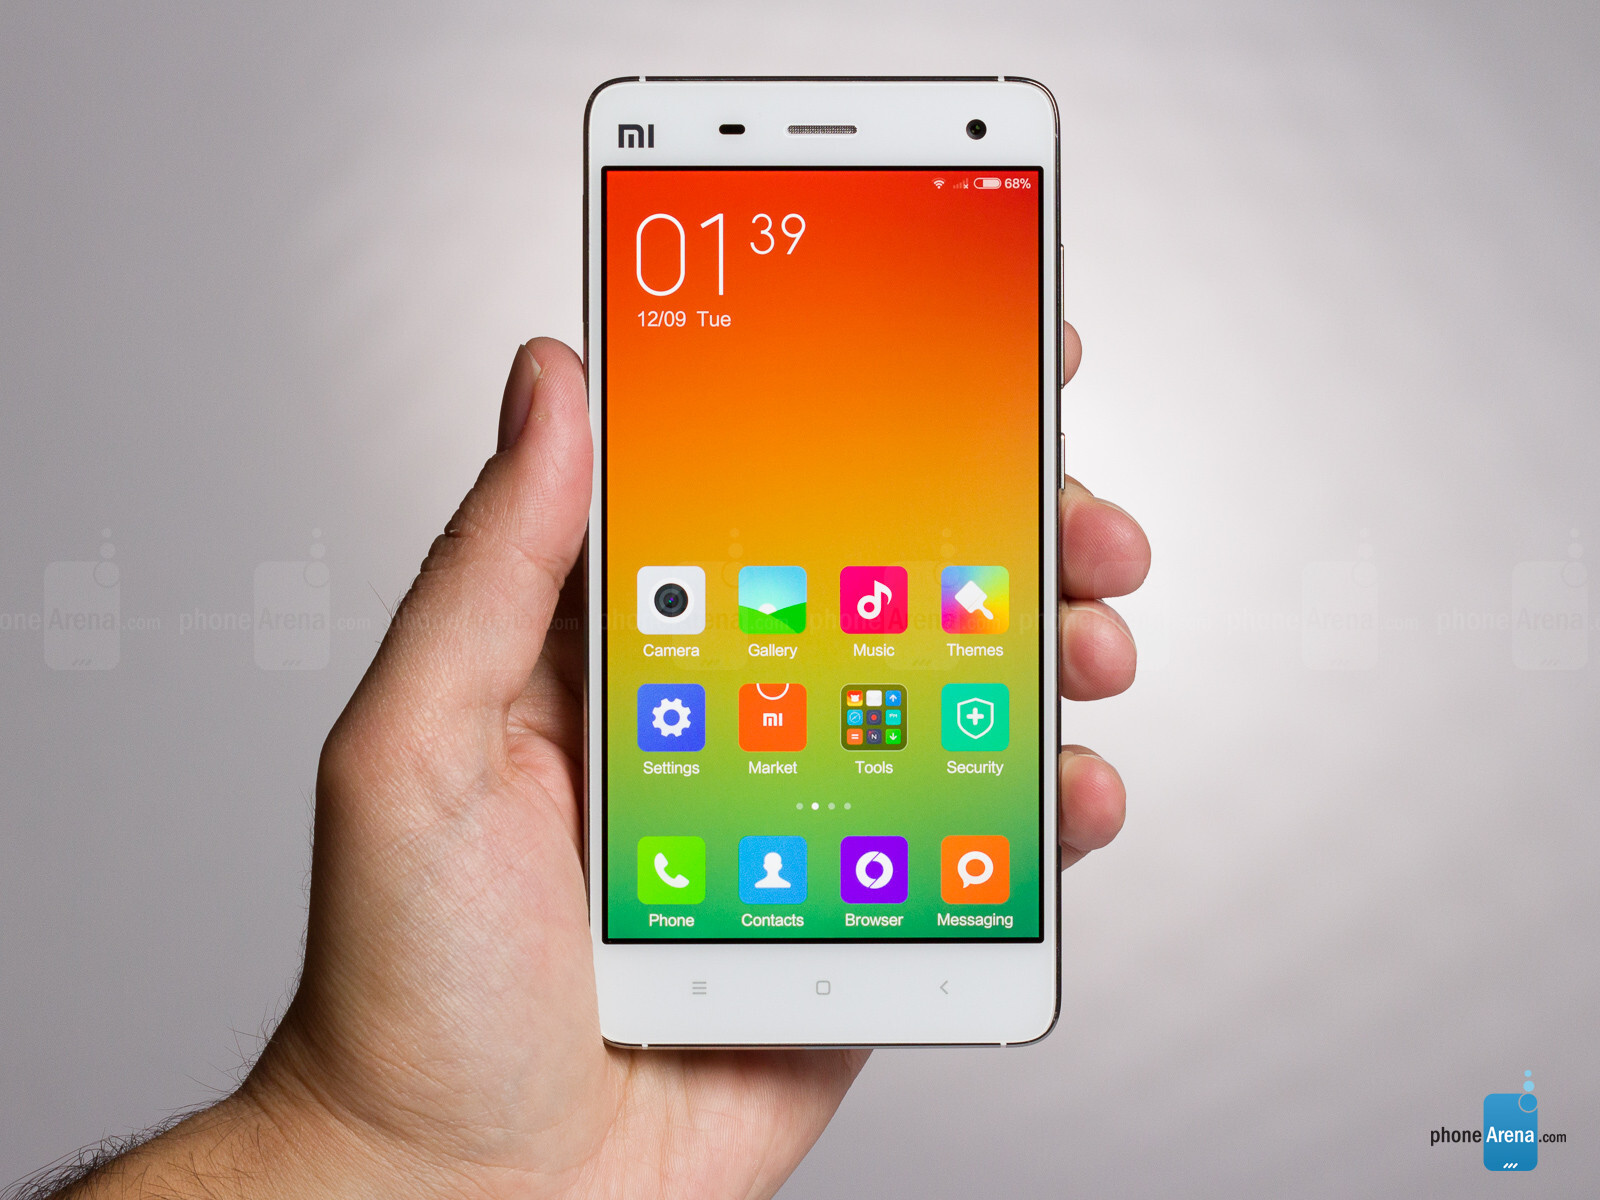 c6a3edb0839fa Xiaomi Mi 4 Review - PhoneArena